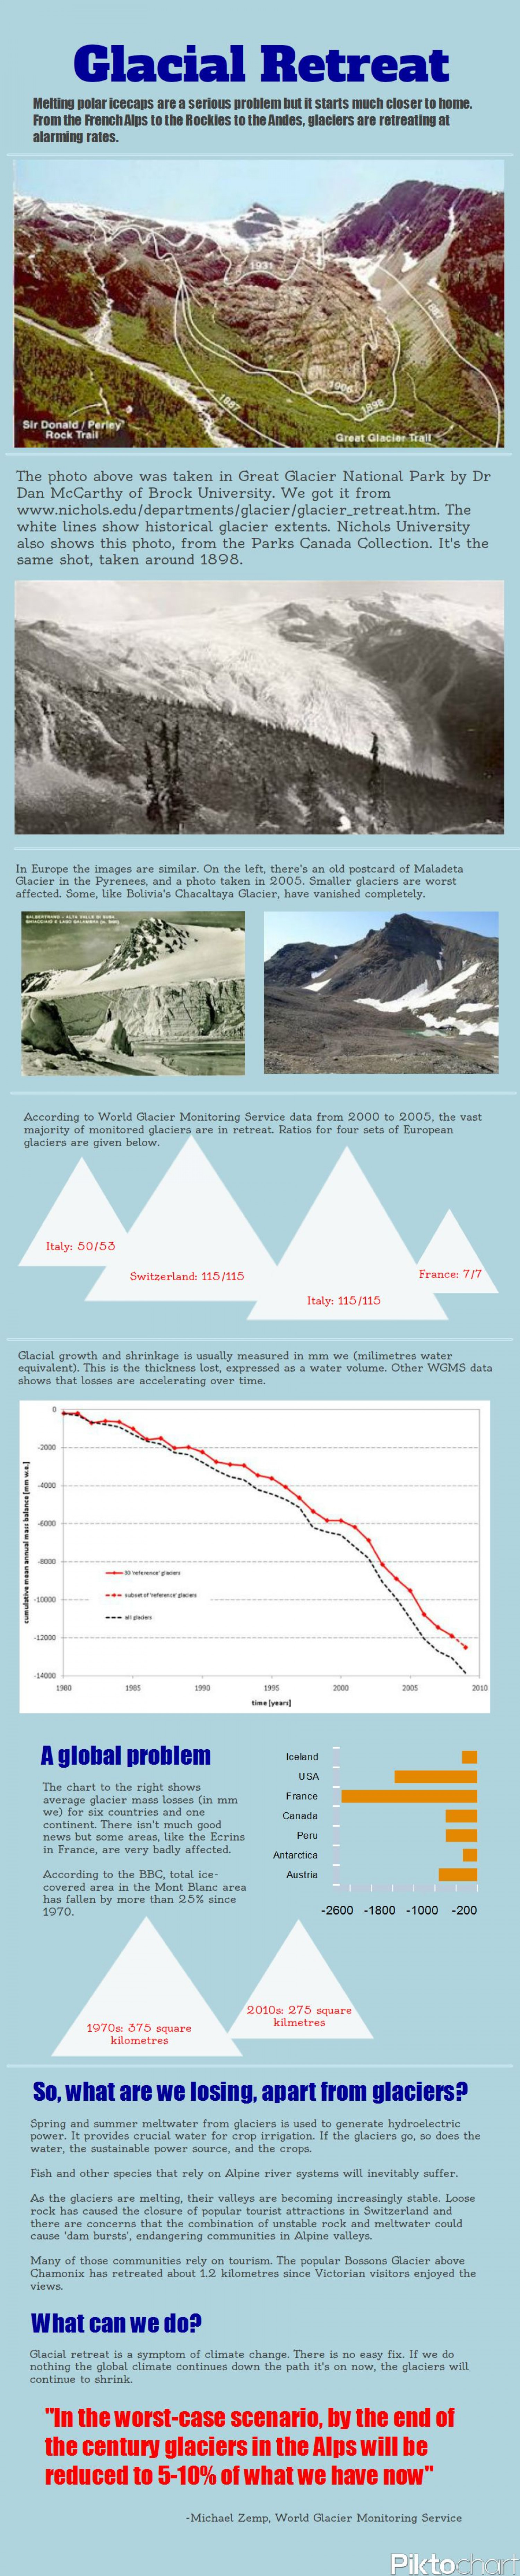 Glacial retreat Infographic